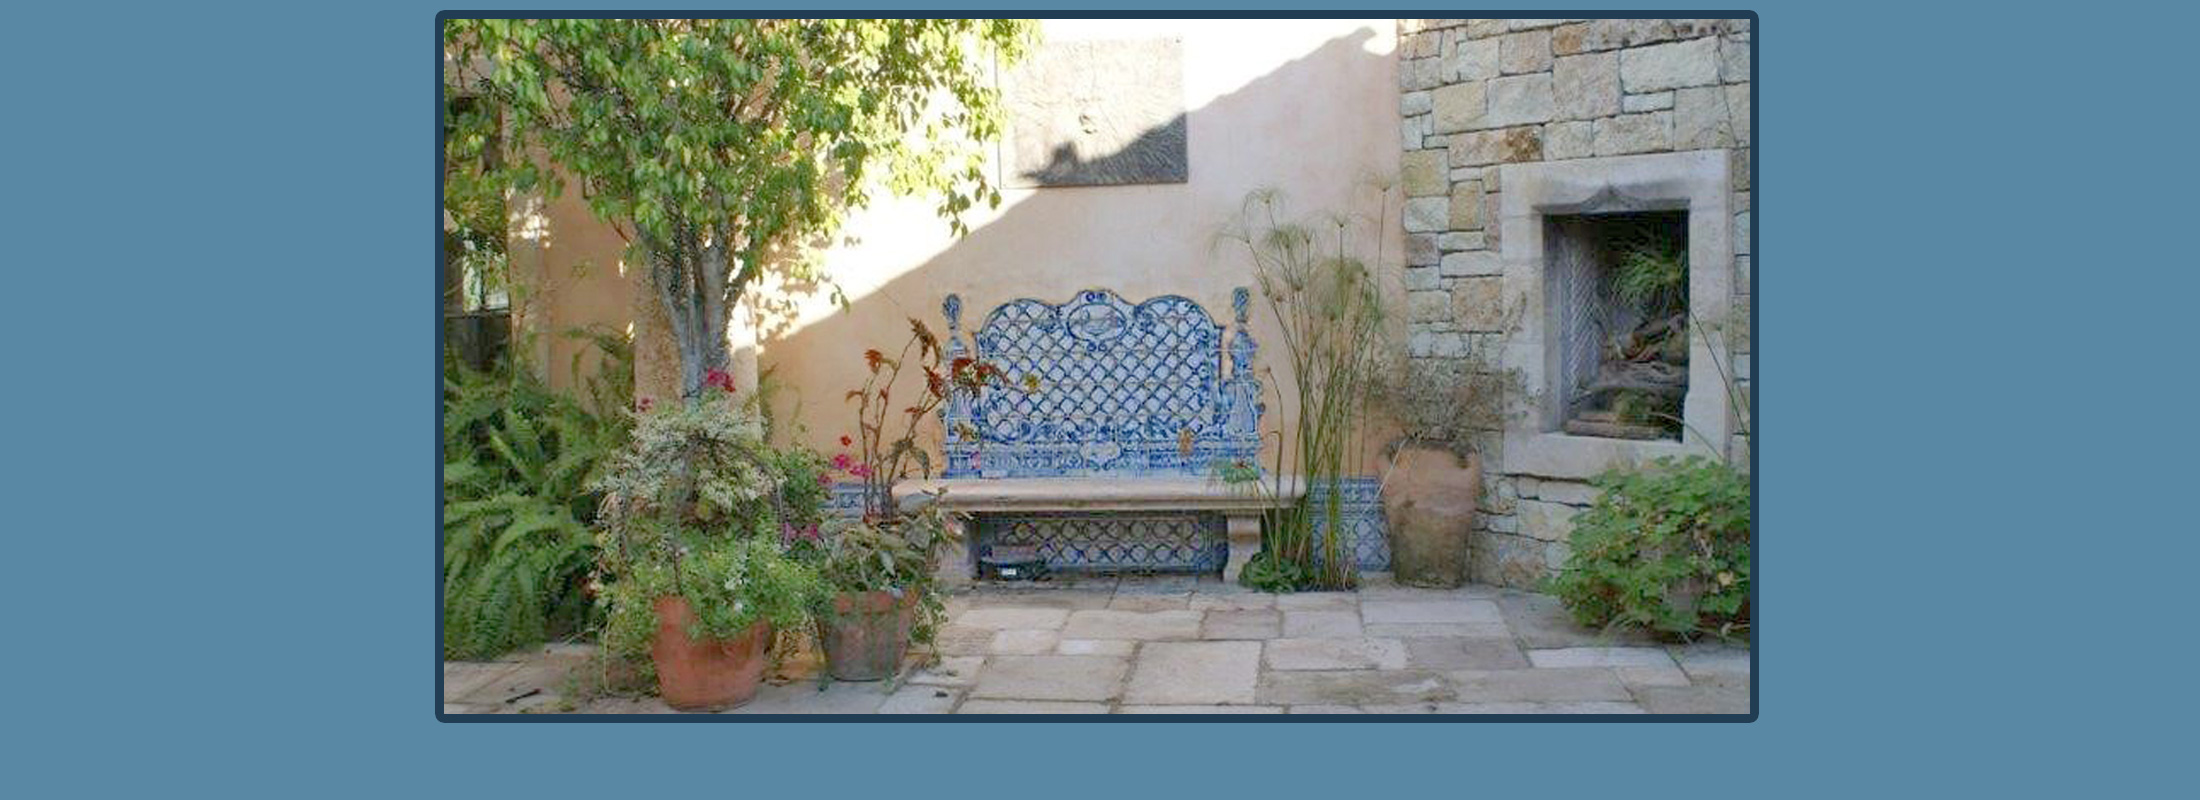 Bench created with Portuguese Tiles - Azulejos